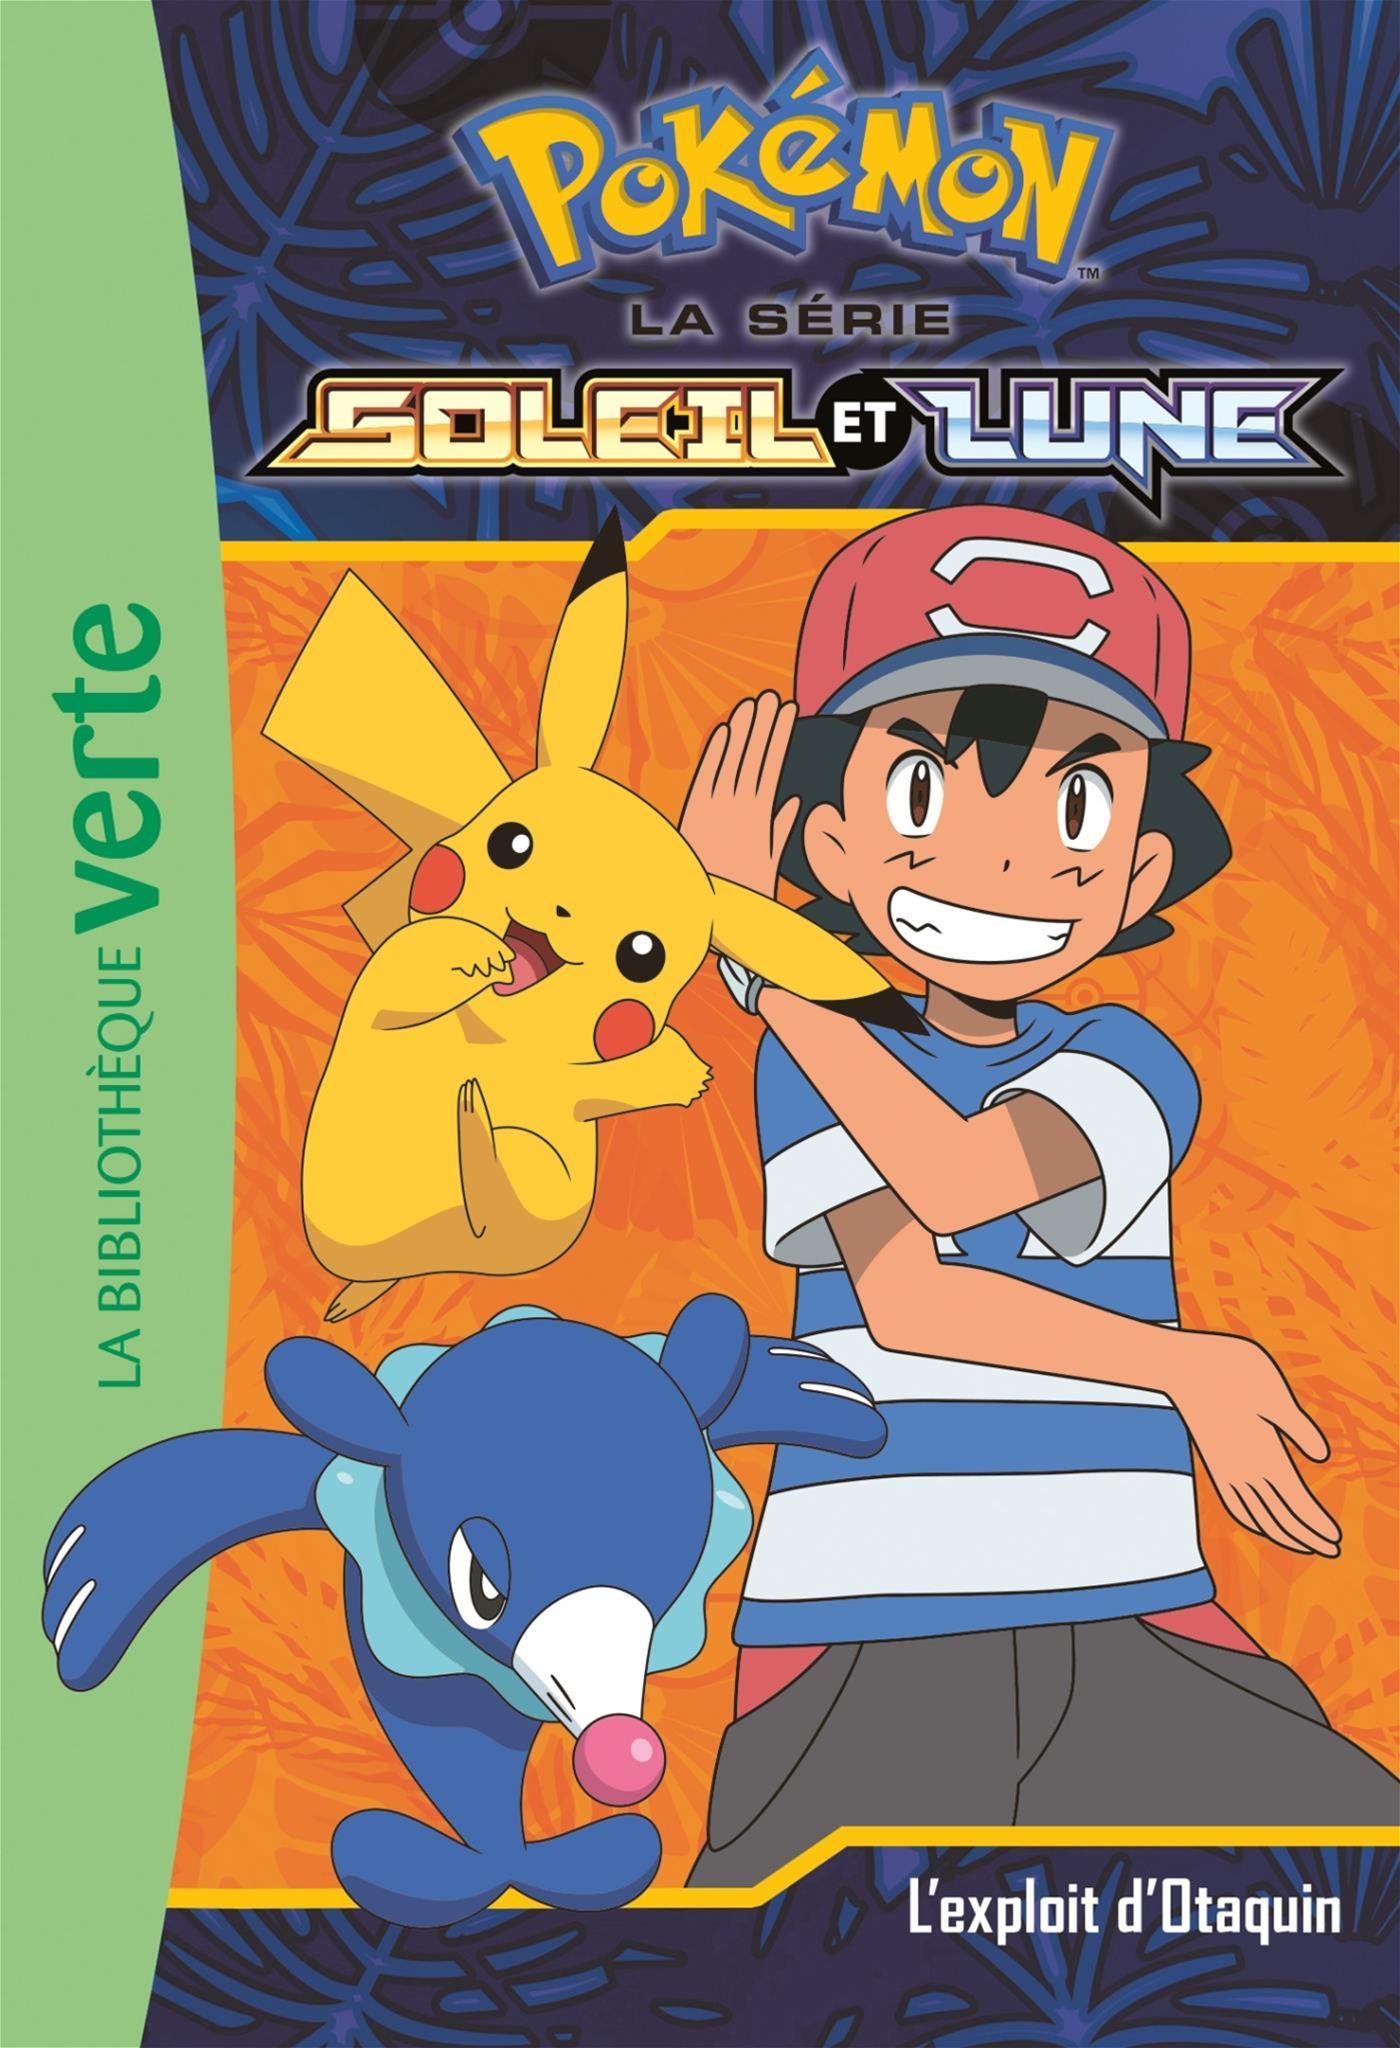 Livre Pokemon Soleil Lune T05 Messageries Adp